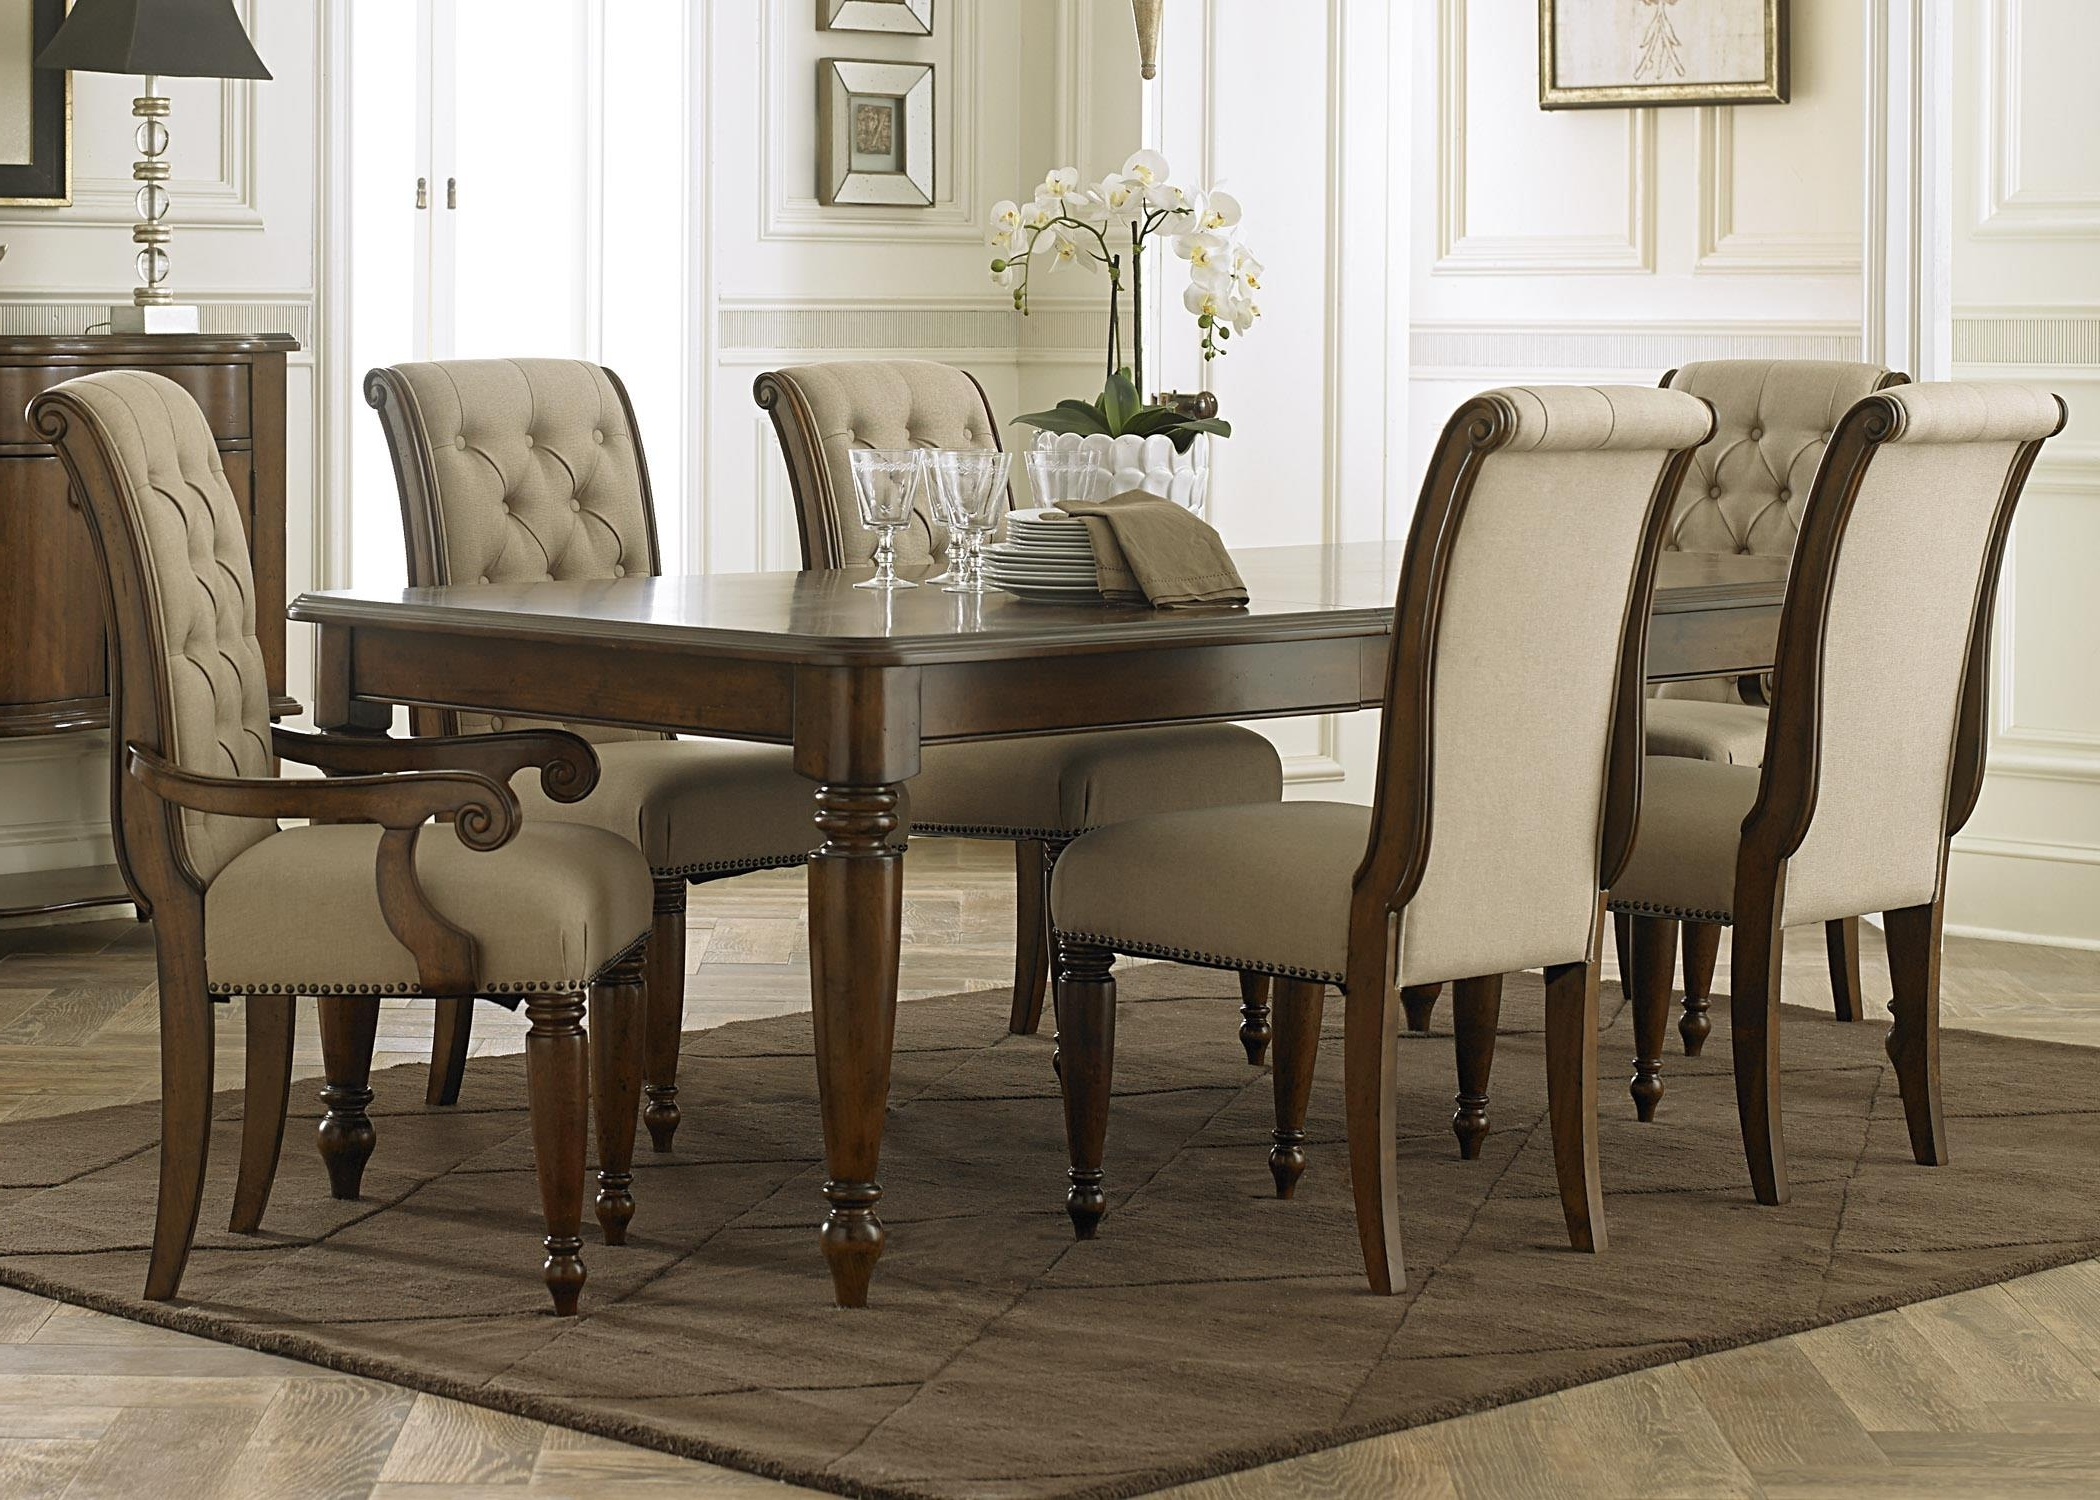 Liberty Furniture Cotswold 545 Dr 7Rls 7 Piece Rectangular Table Set Pertaining To Most Current Rectangular Dining Tables Sets (View 10 of 25)